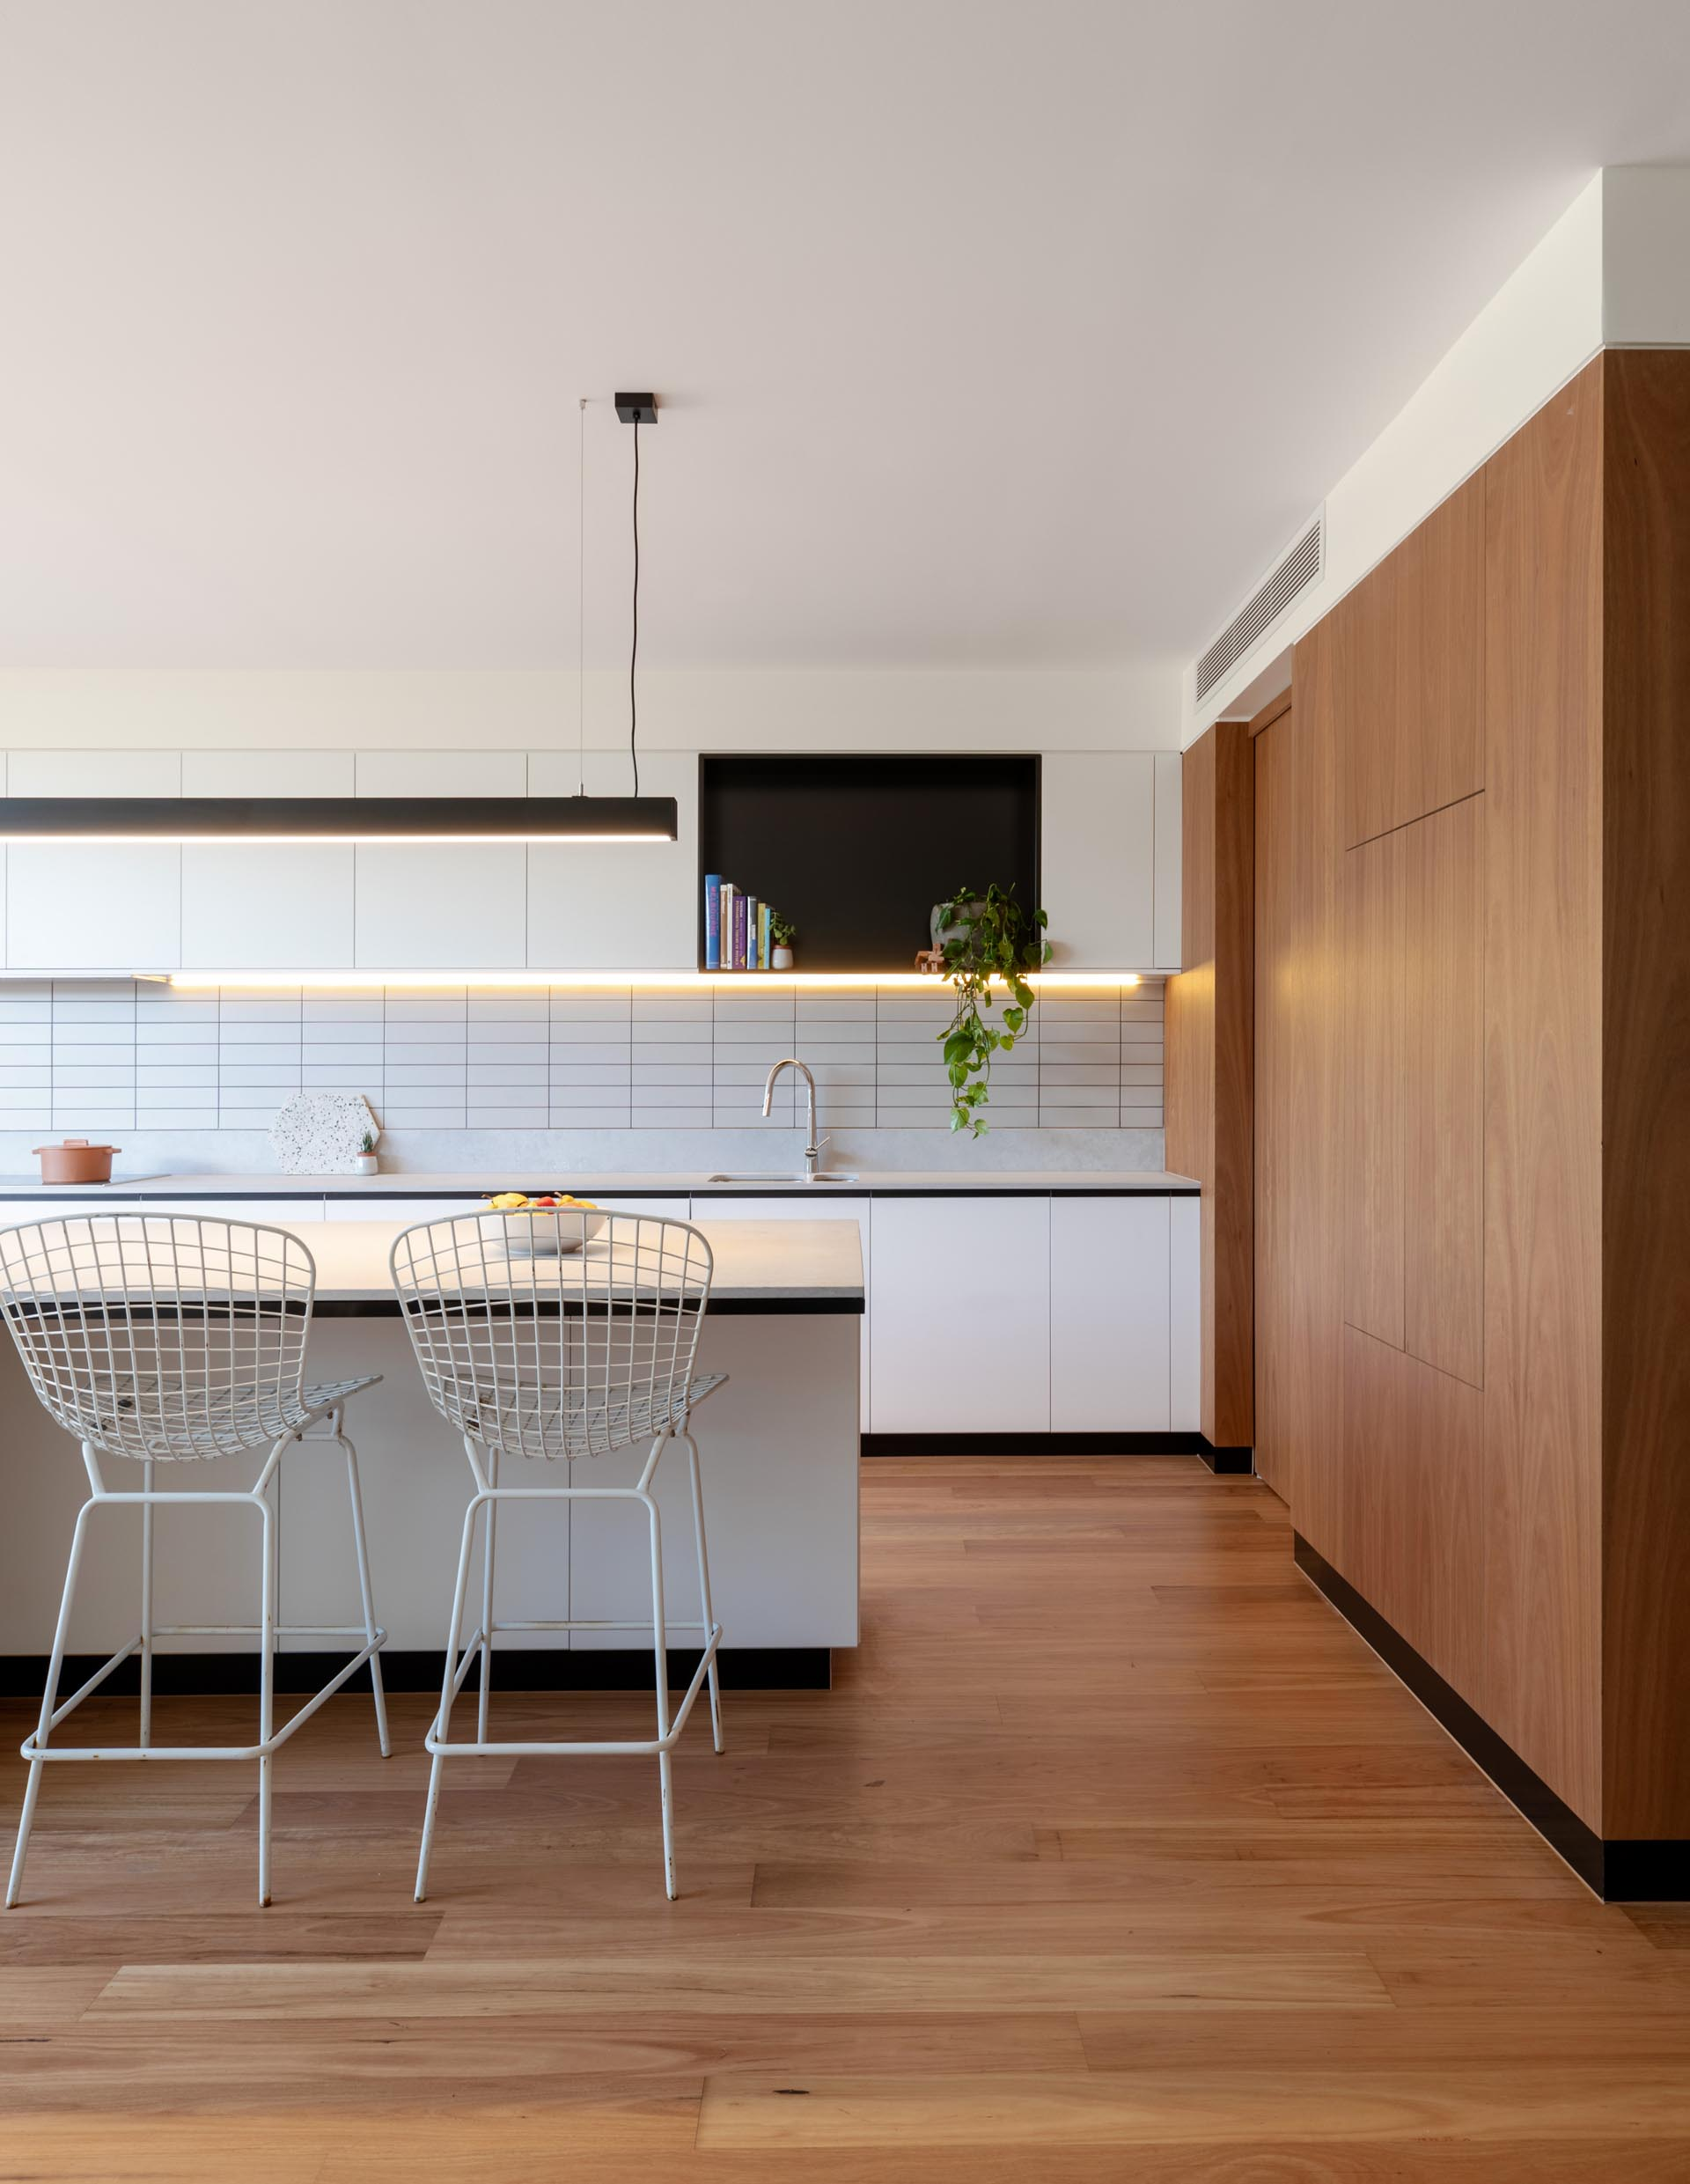 A modern kitchen includes minimalist white cabinets, a black accent shelf, a large island with room for seating, and undermount lighting.